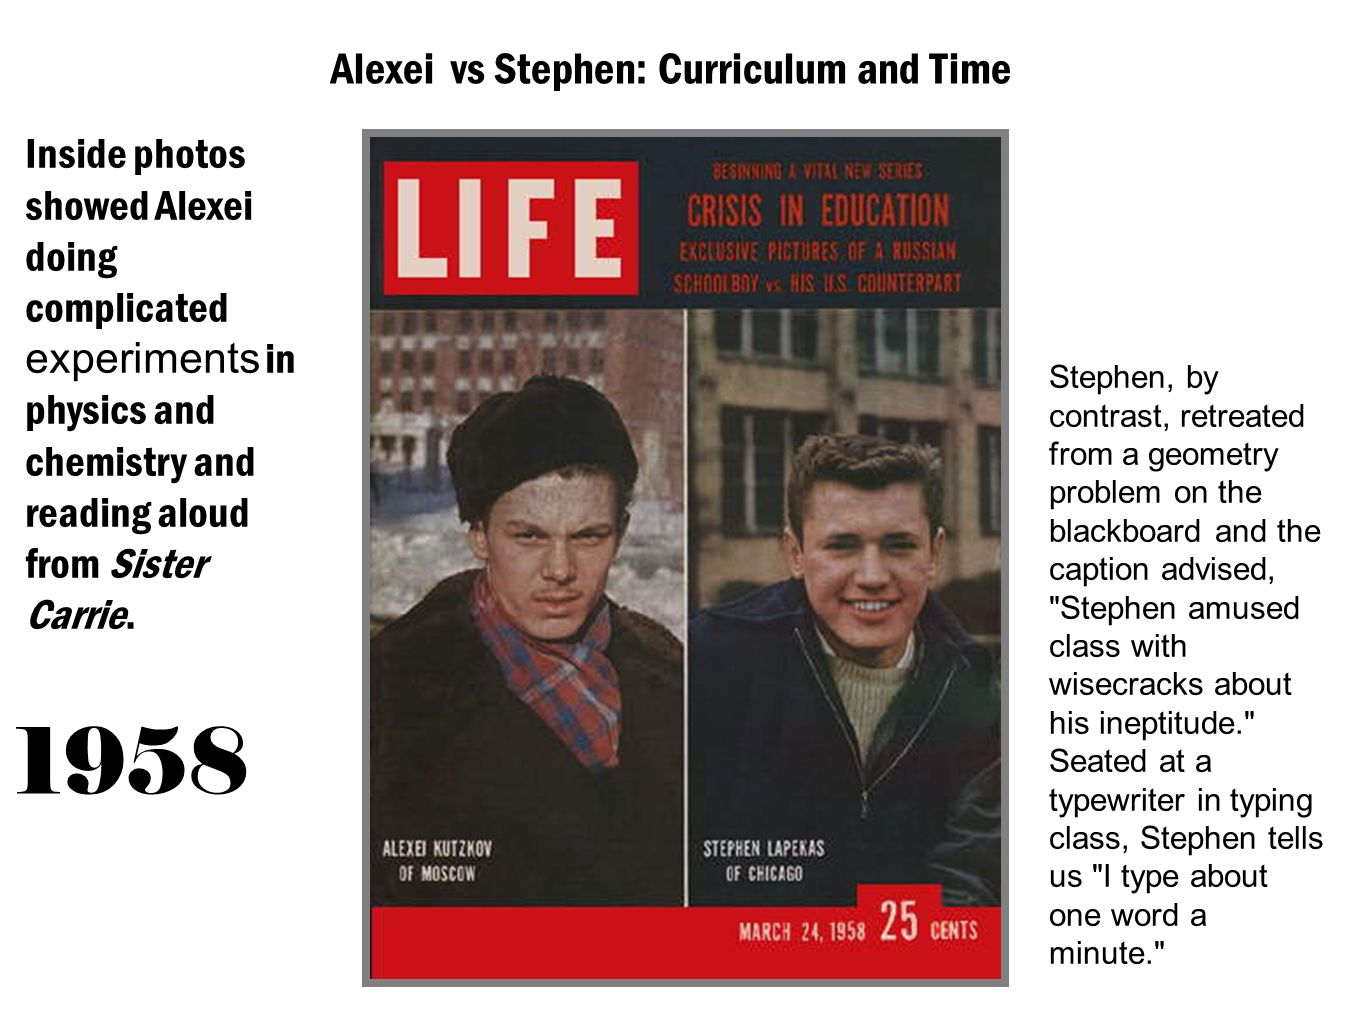 Alexei vs Stephen: Curriculum and Time